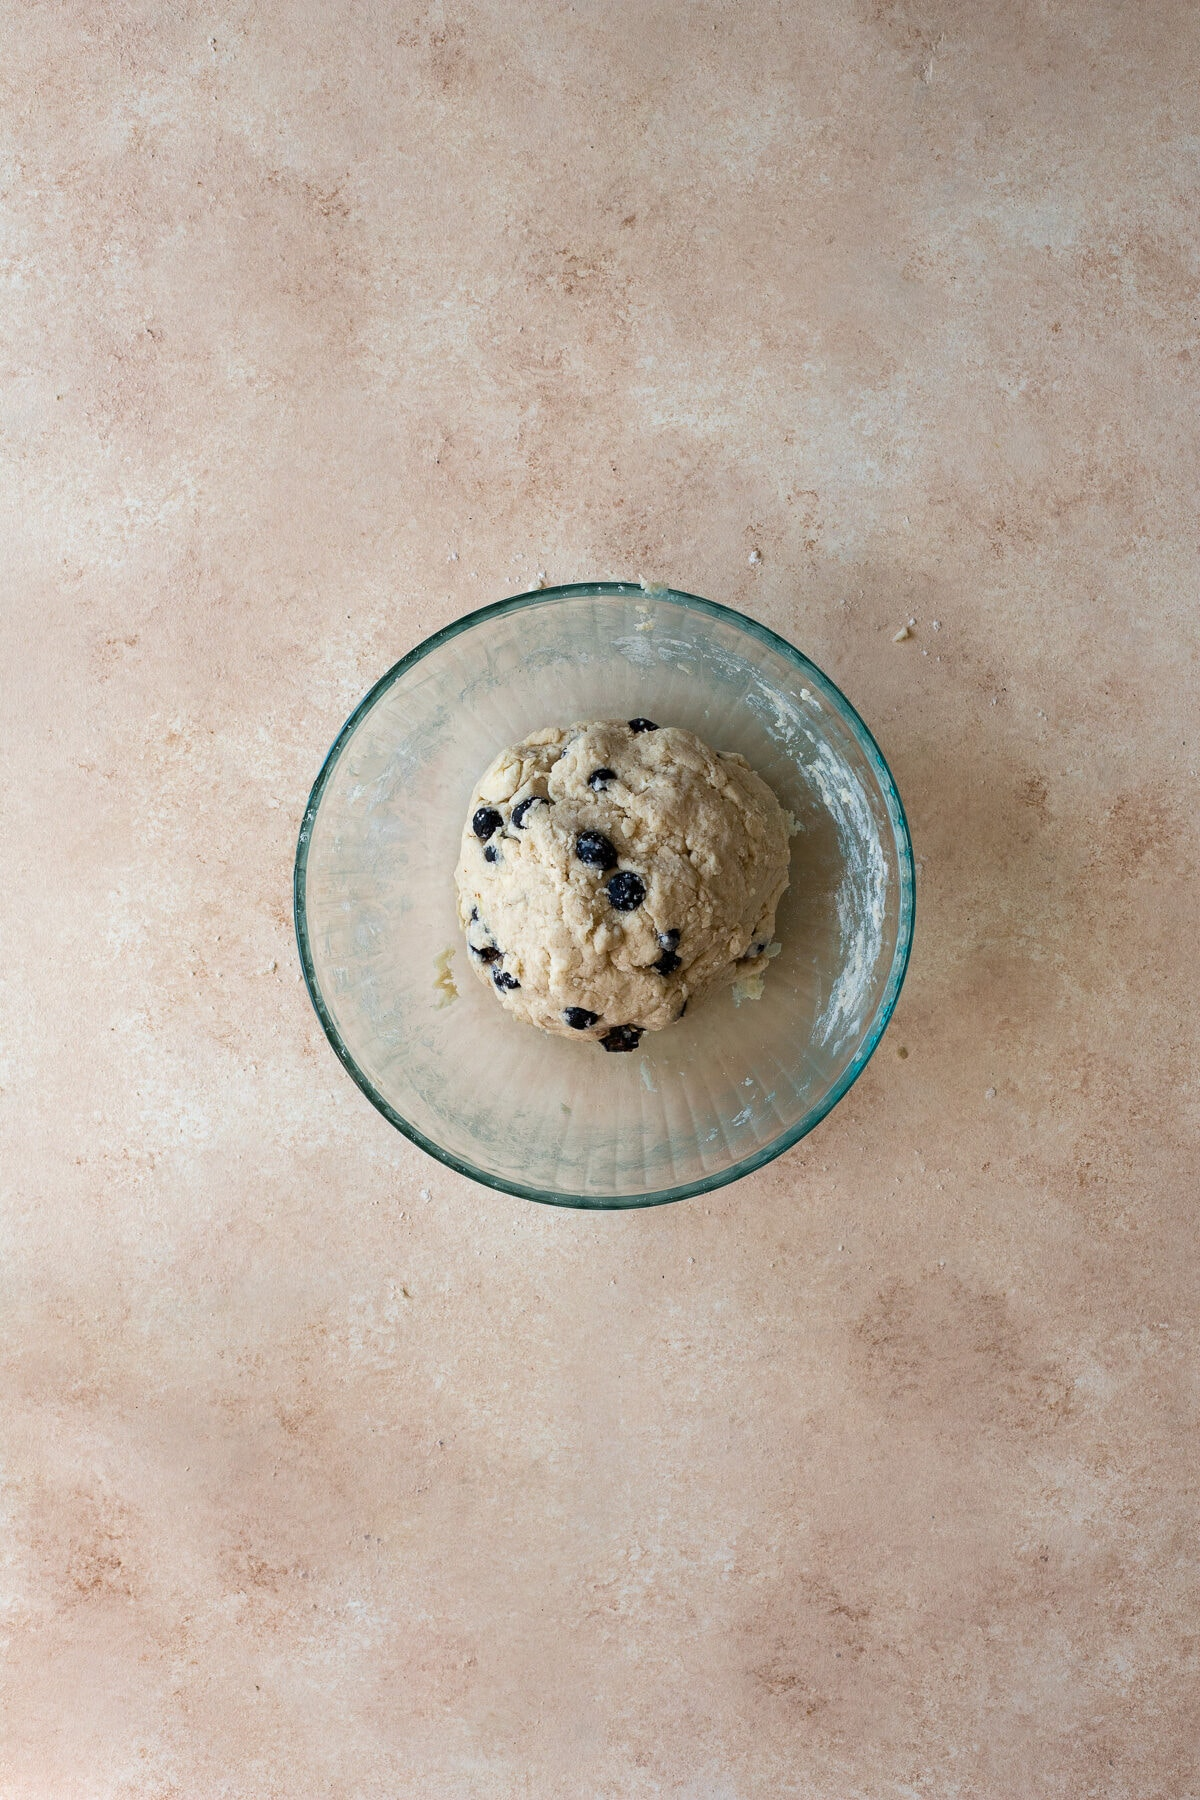 Blueberry scone dough in a mixing bowl.